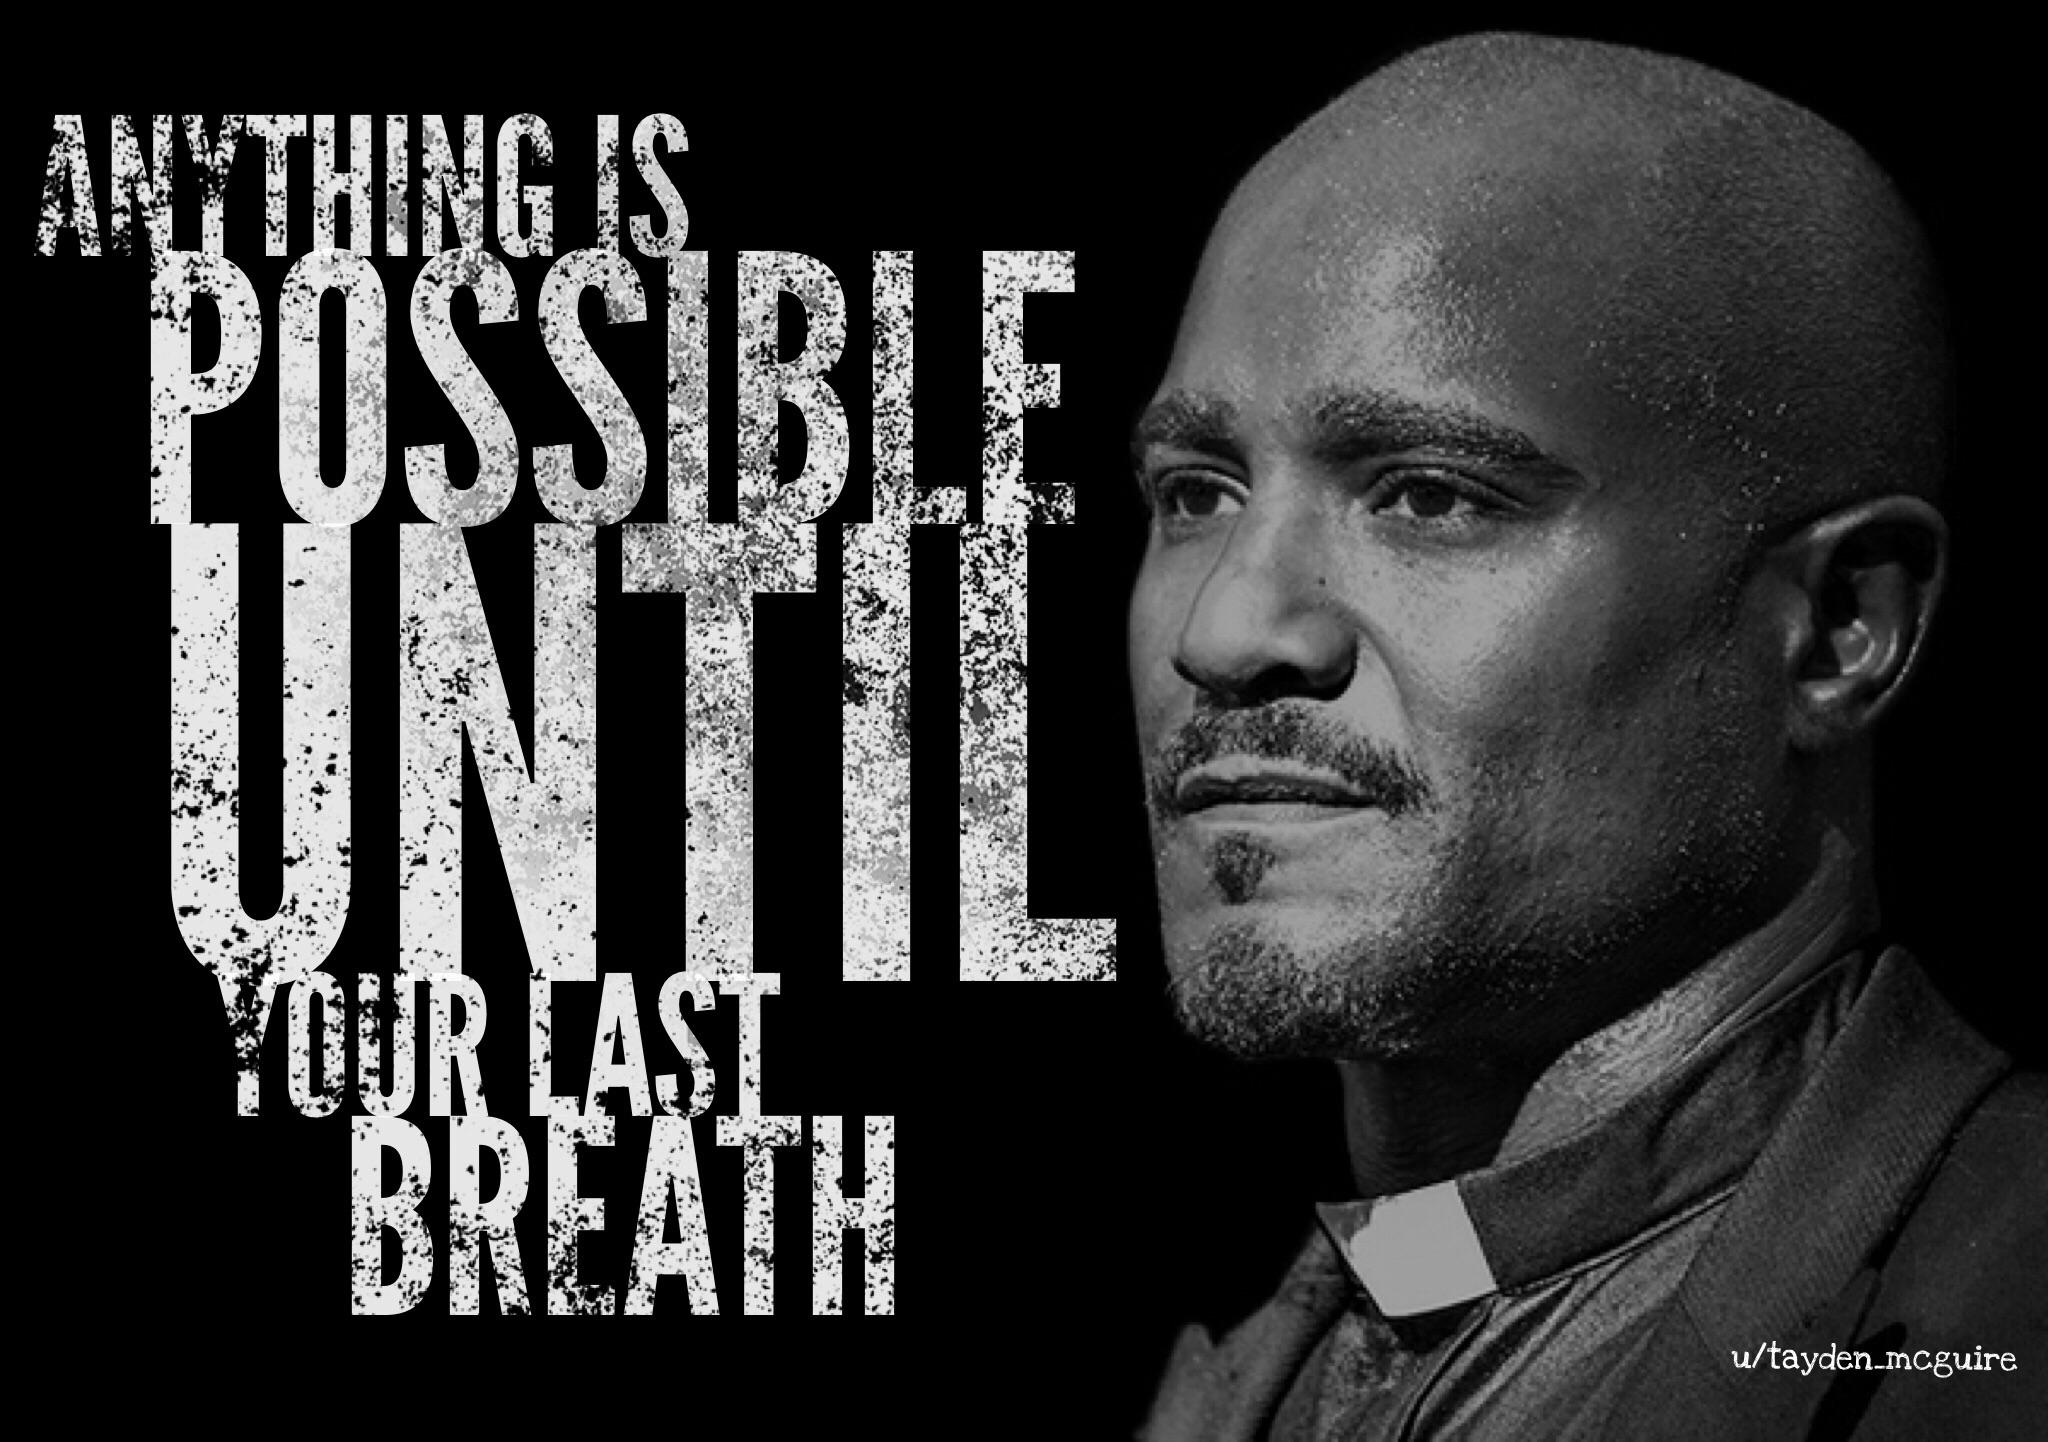 [Image] Anything is possible until your last breath -Father Gabriel (TWD)